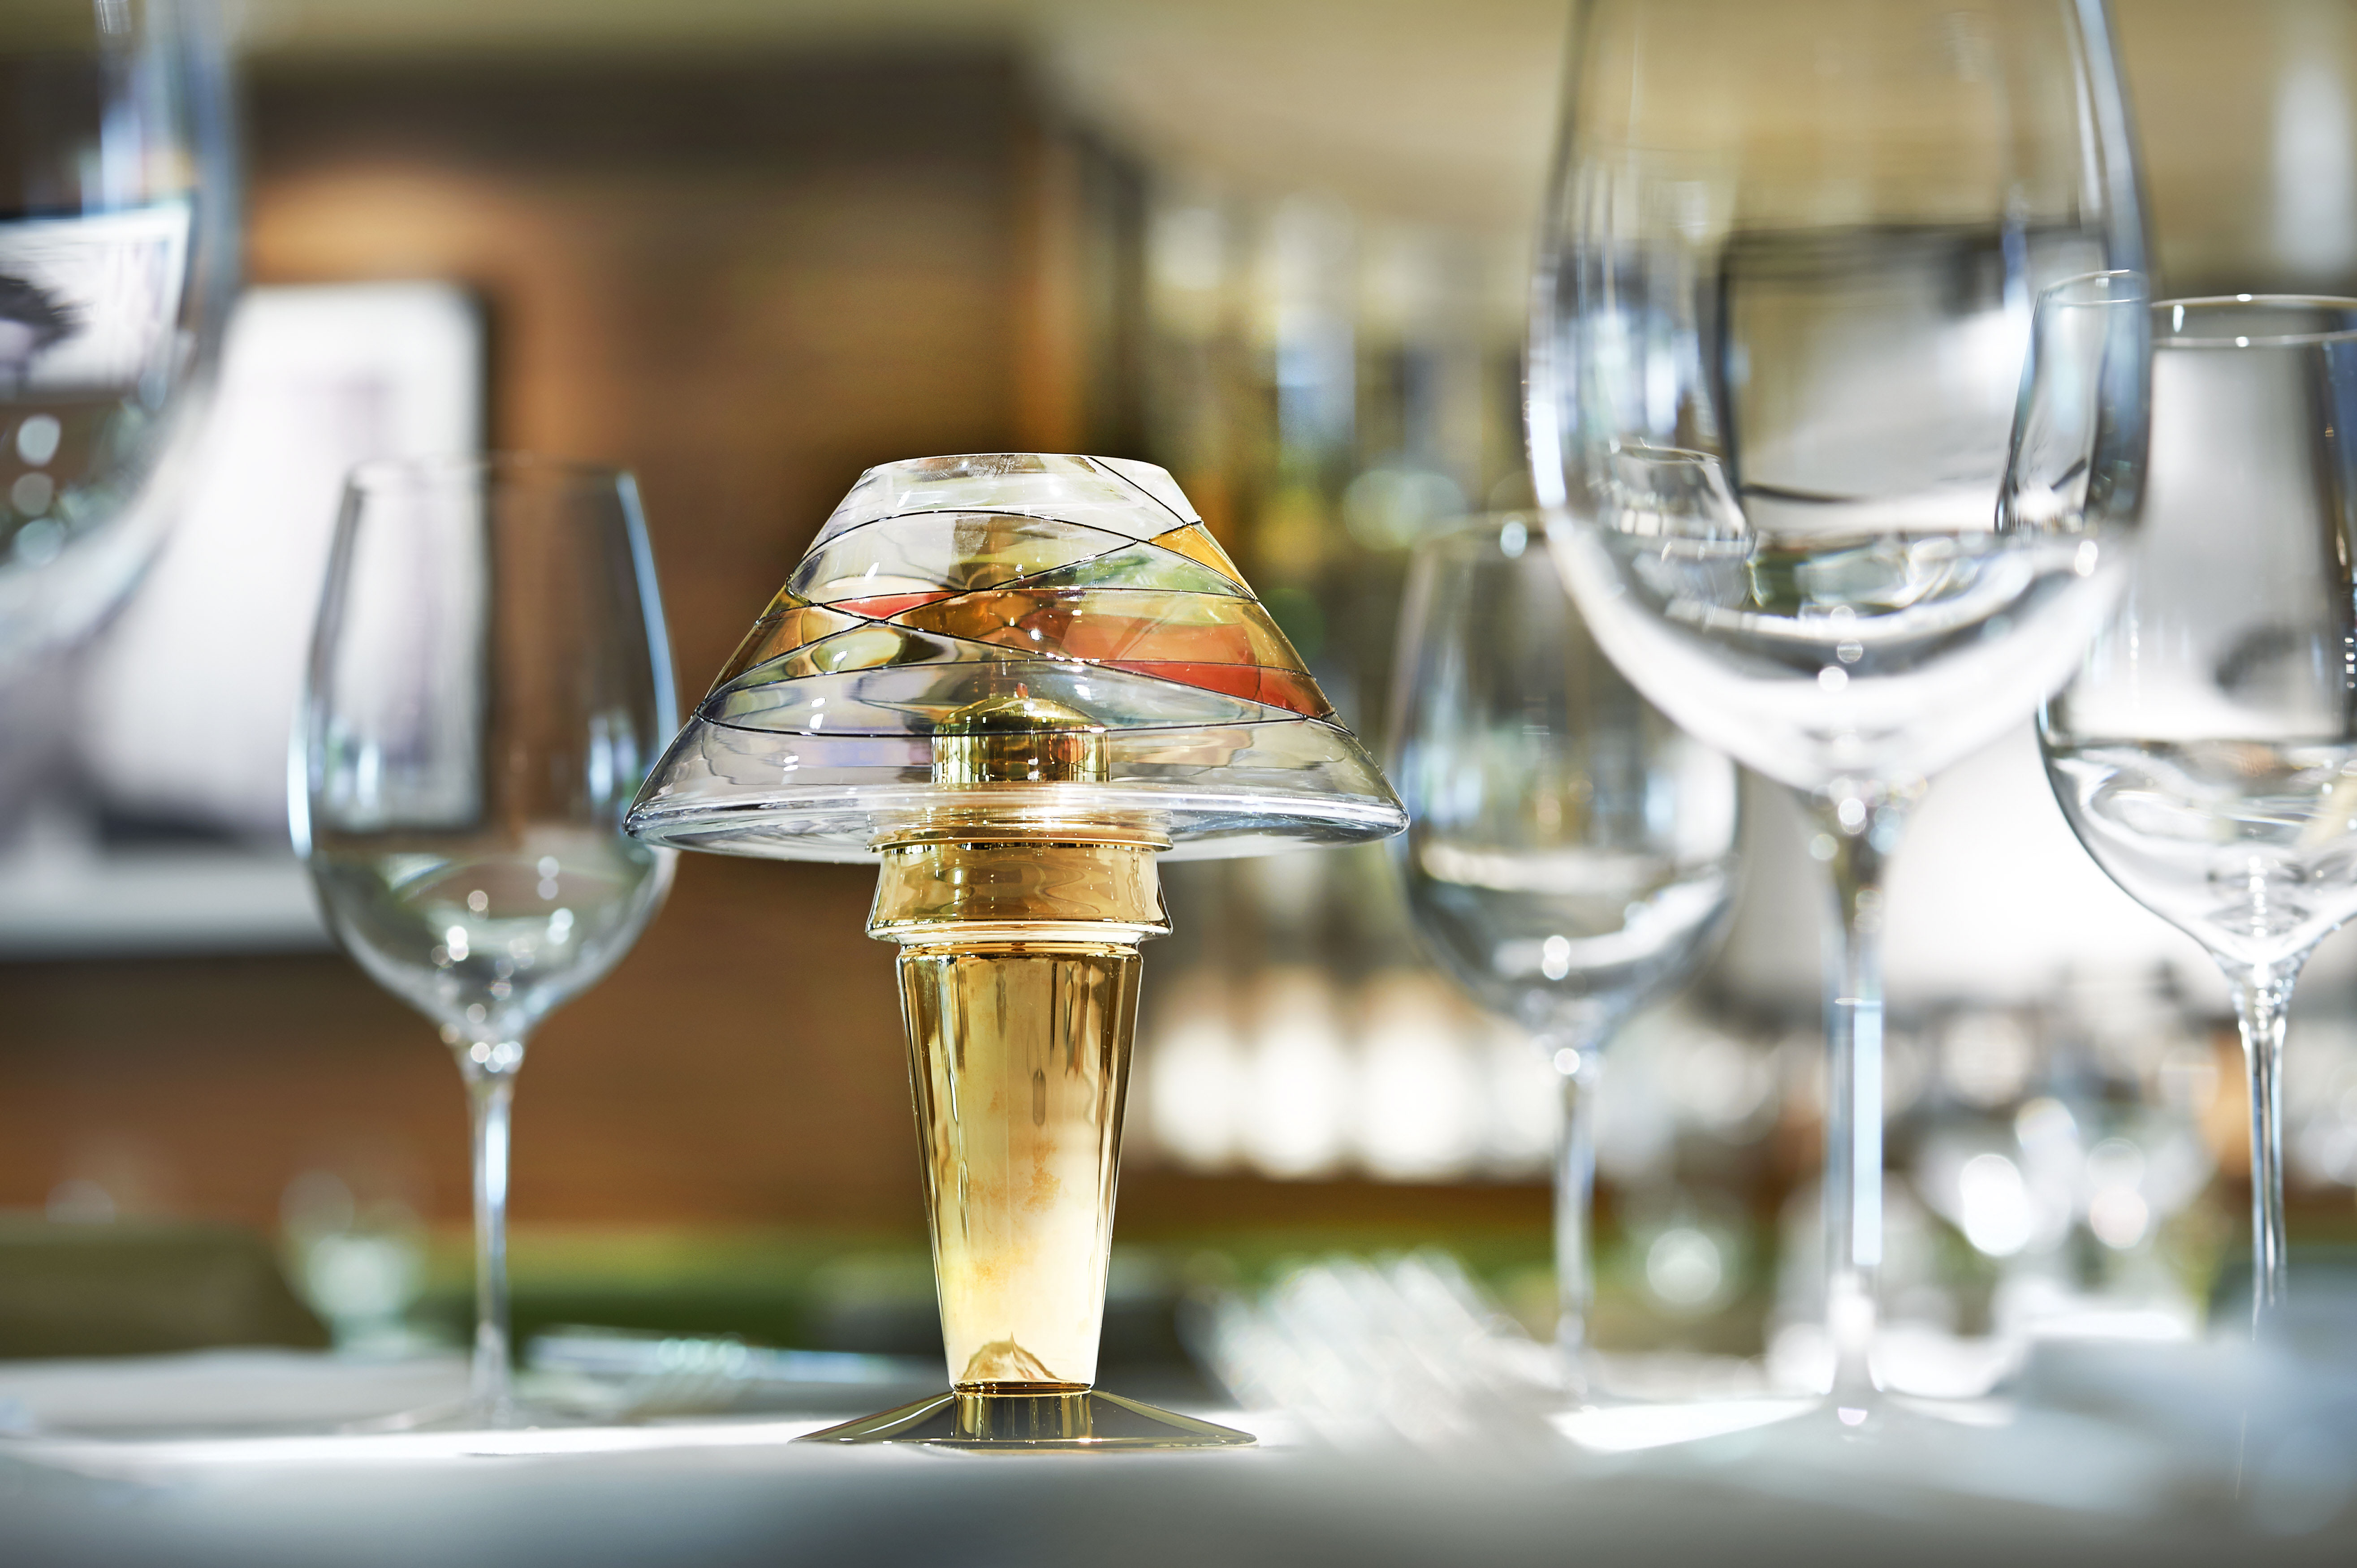 Marco Pierre White Steakhouse Bar & Grill - Syon Park - Greater London